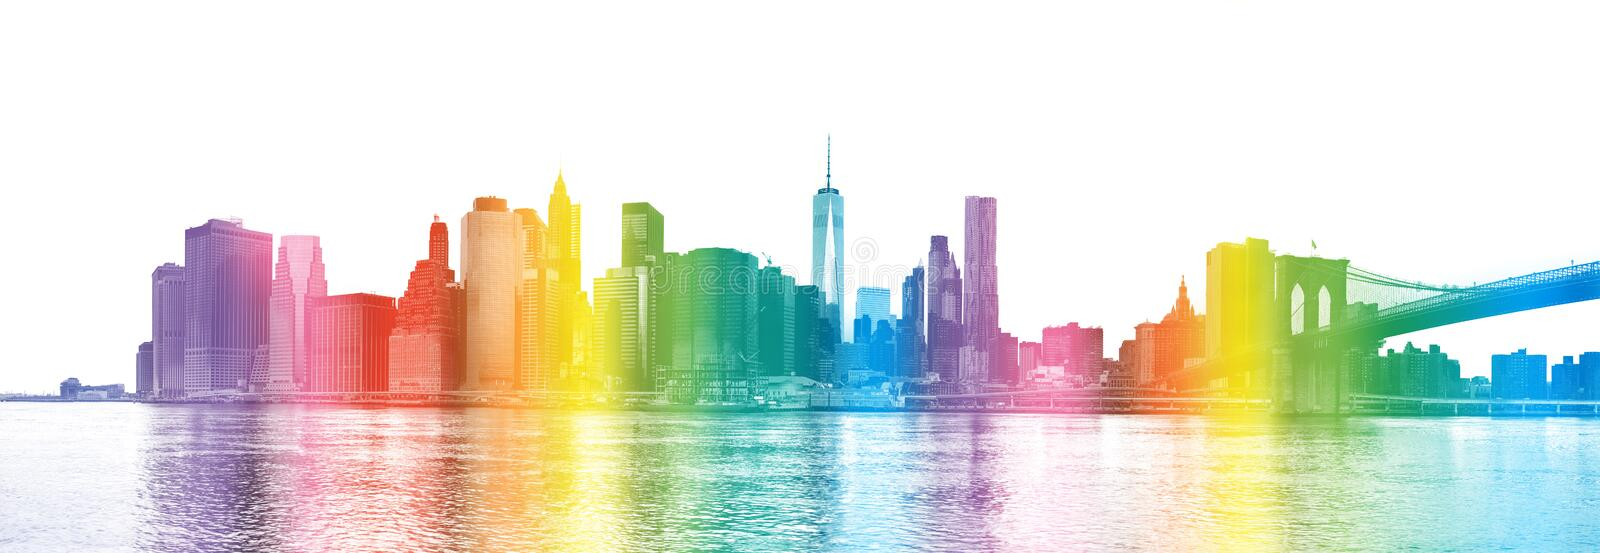 New York City - rainbow colors silhouette of Manhattan skyscrap royalty free stock photography